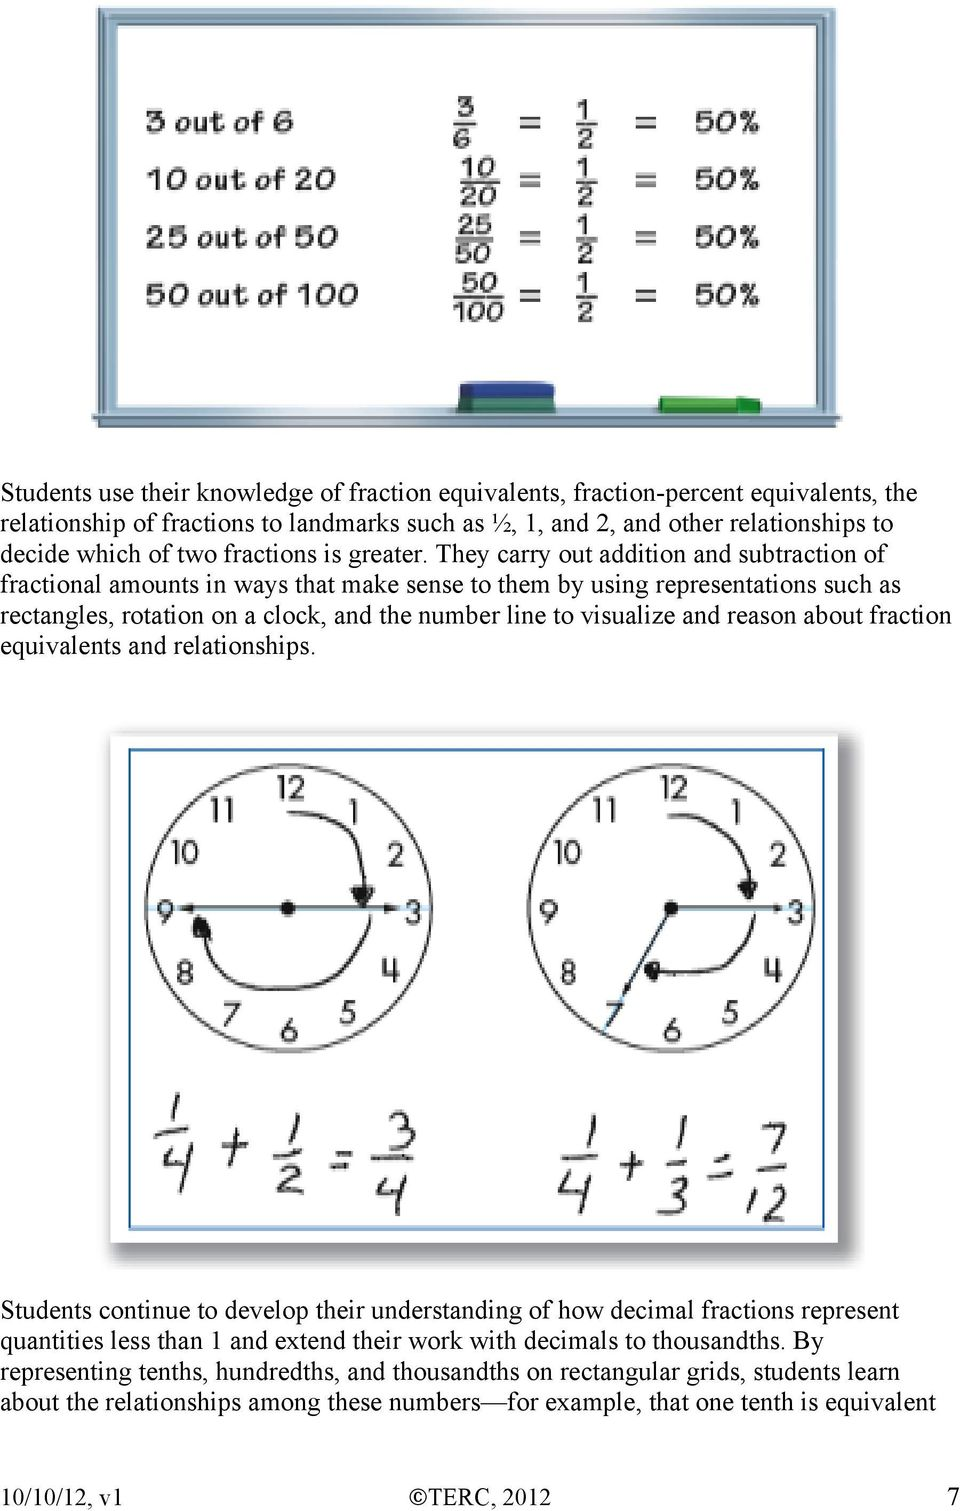 They carry out addition and subtraction of fractional amounts in ways that make sense to them by using representations such as rectangles, rotation on a clock, and the number line to visualize and